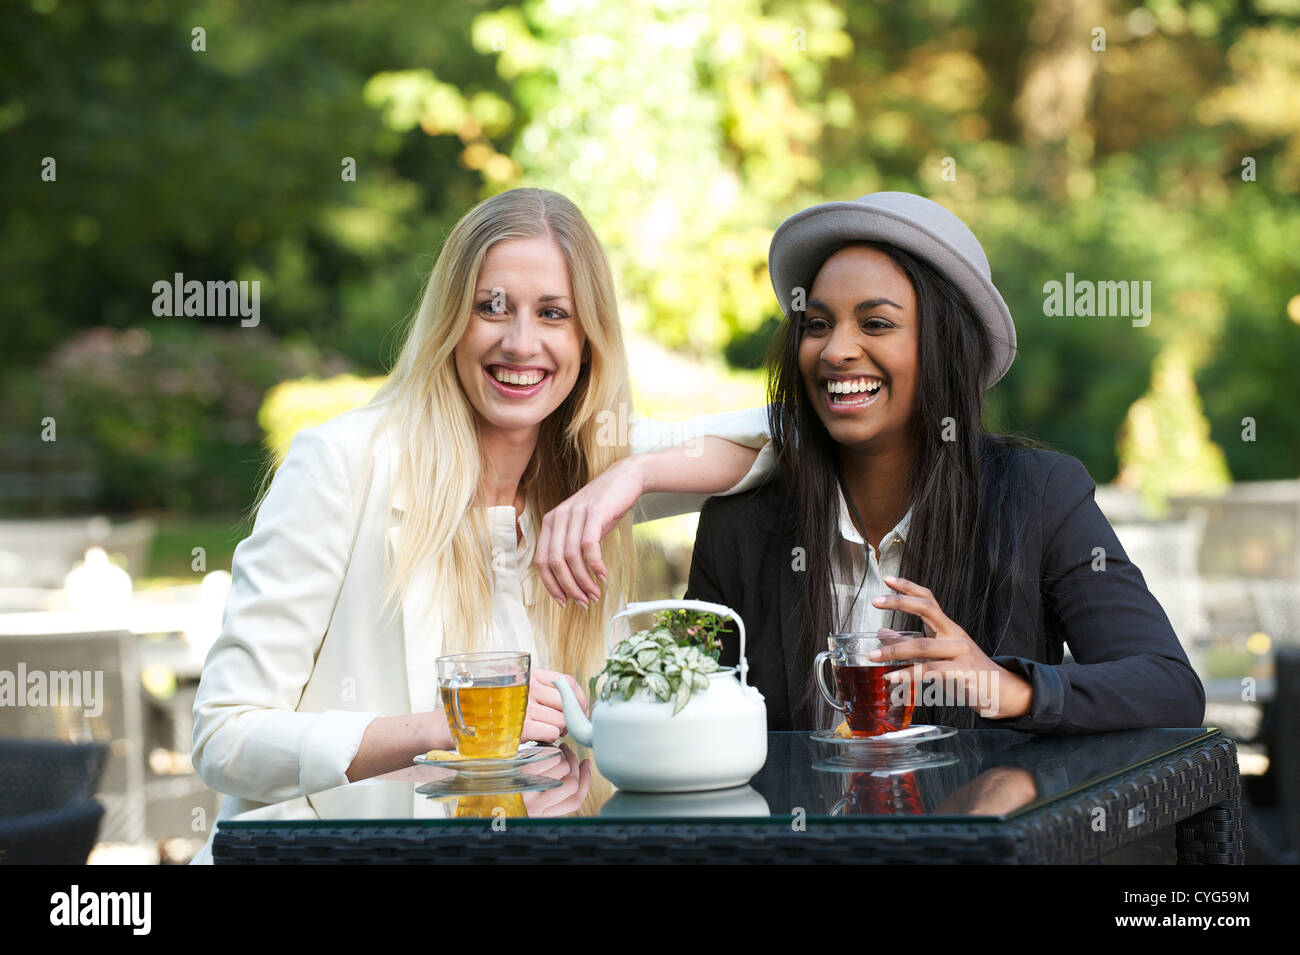 Two young women friends drinking tea outdoors and having a good time Stock Photo